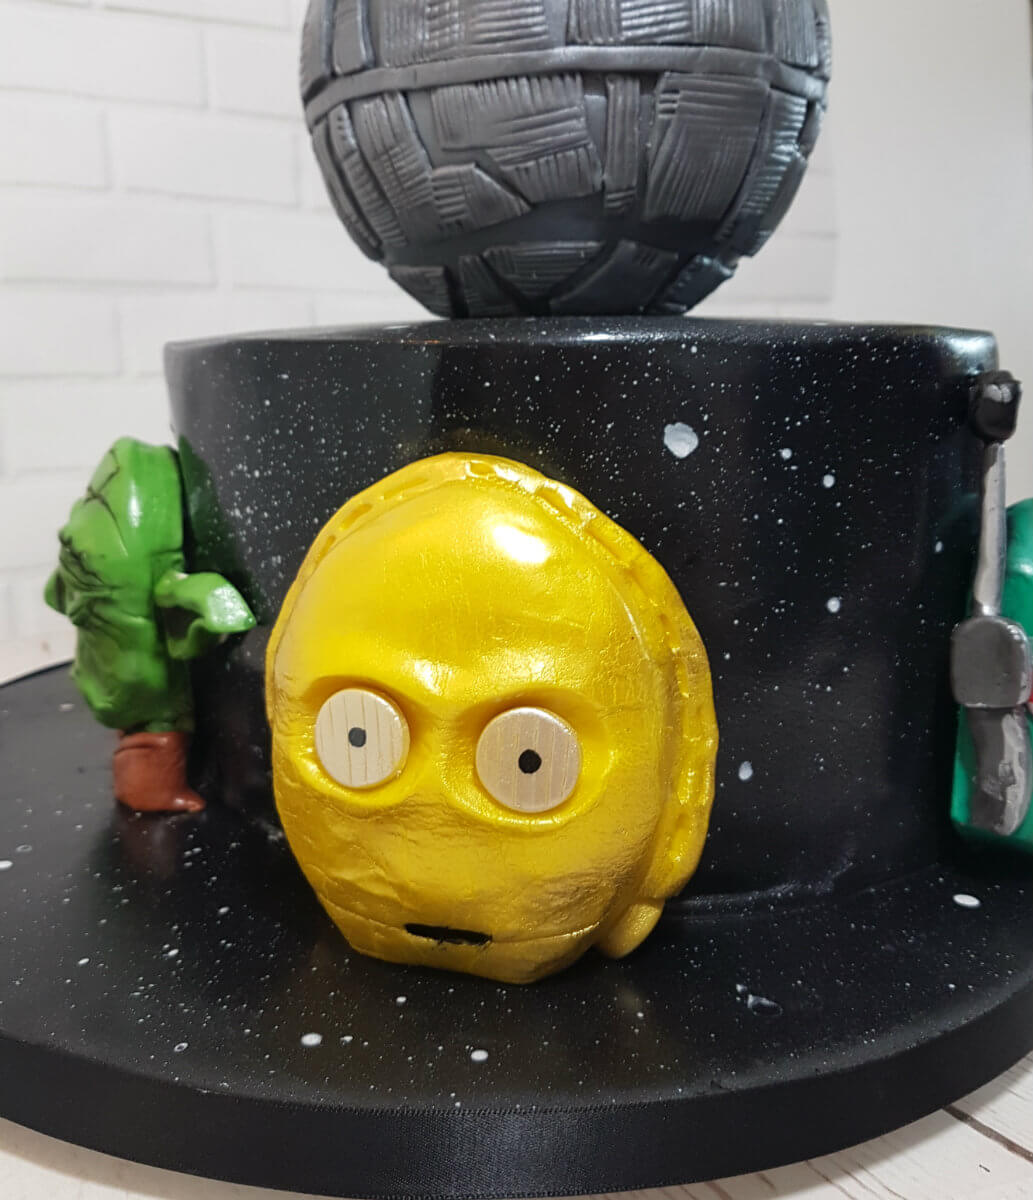 Star wars theme cake 3d head C3P0 - tamworth